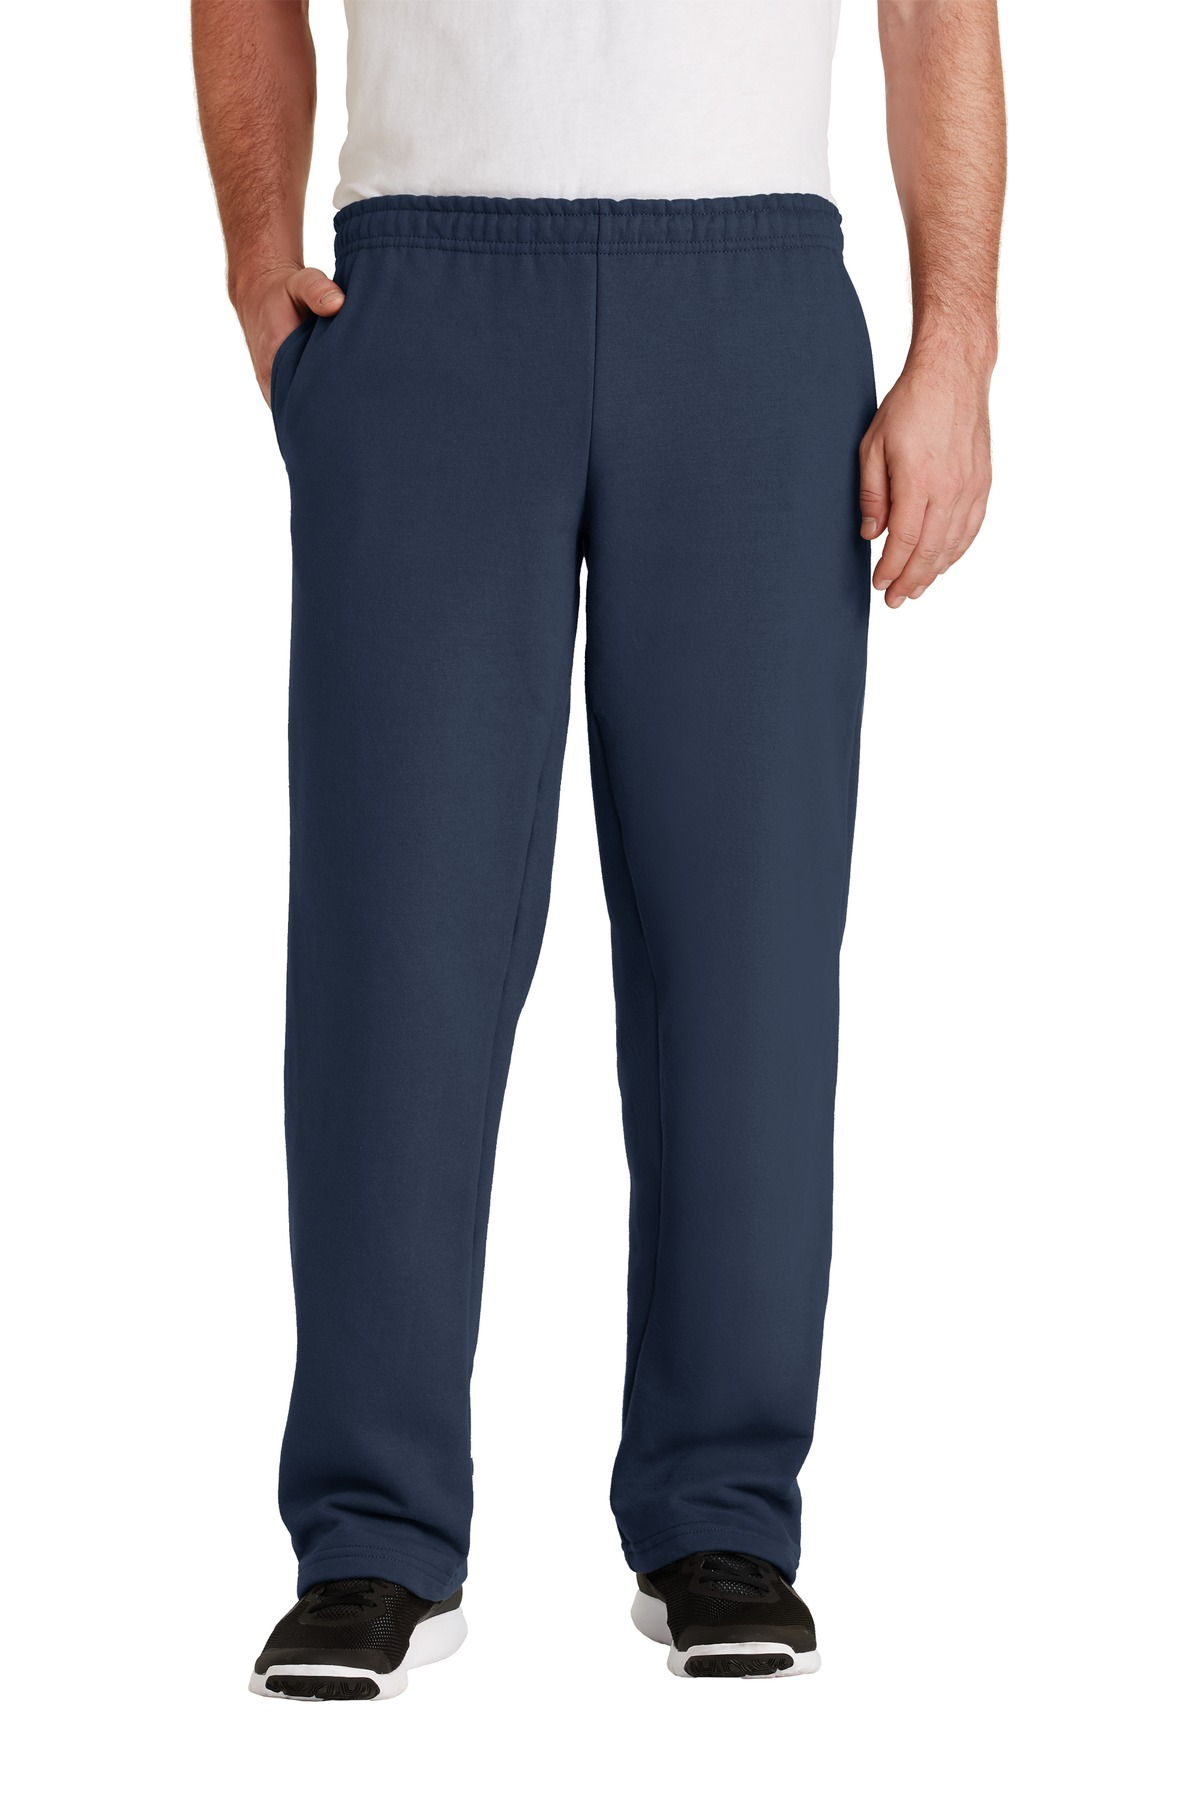 Gildan ®  - DryBlend ®  Open Bottom Sweatpant. 12300 - Navy